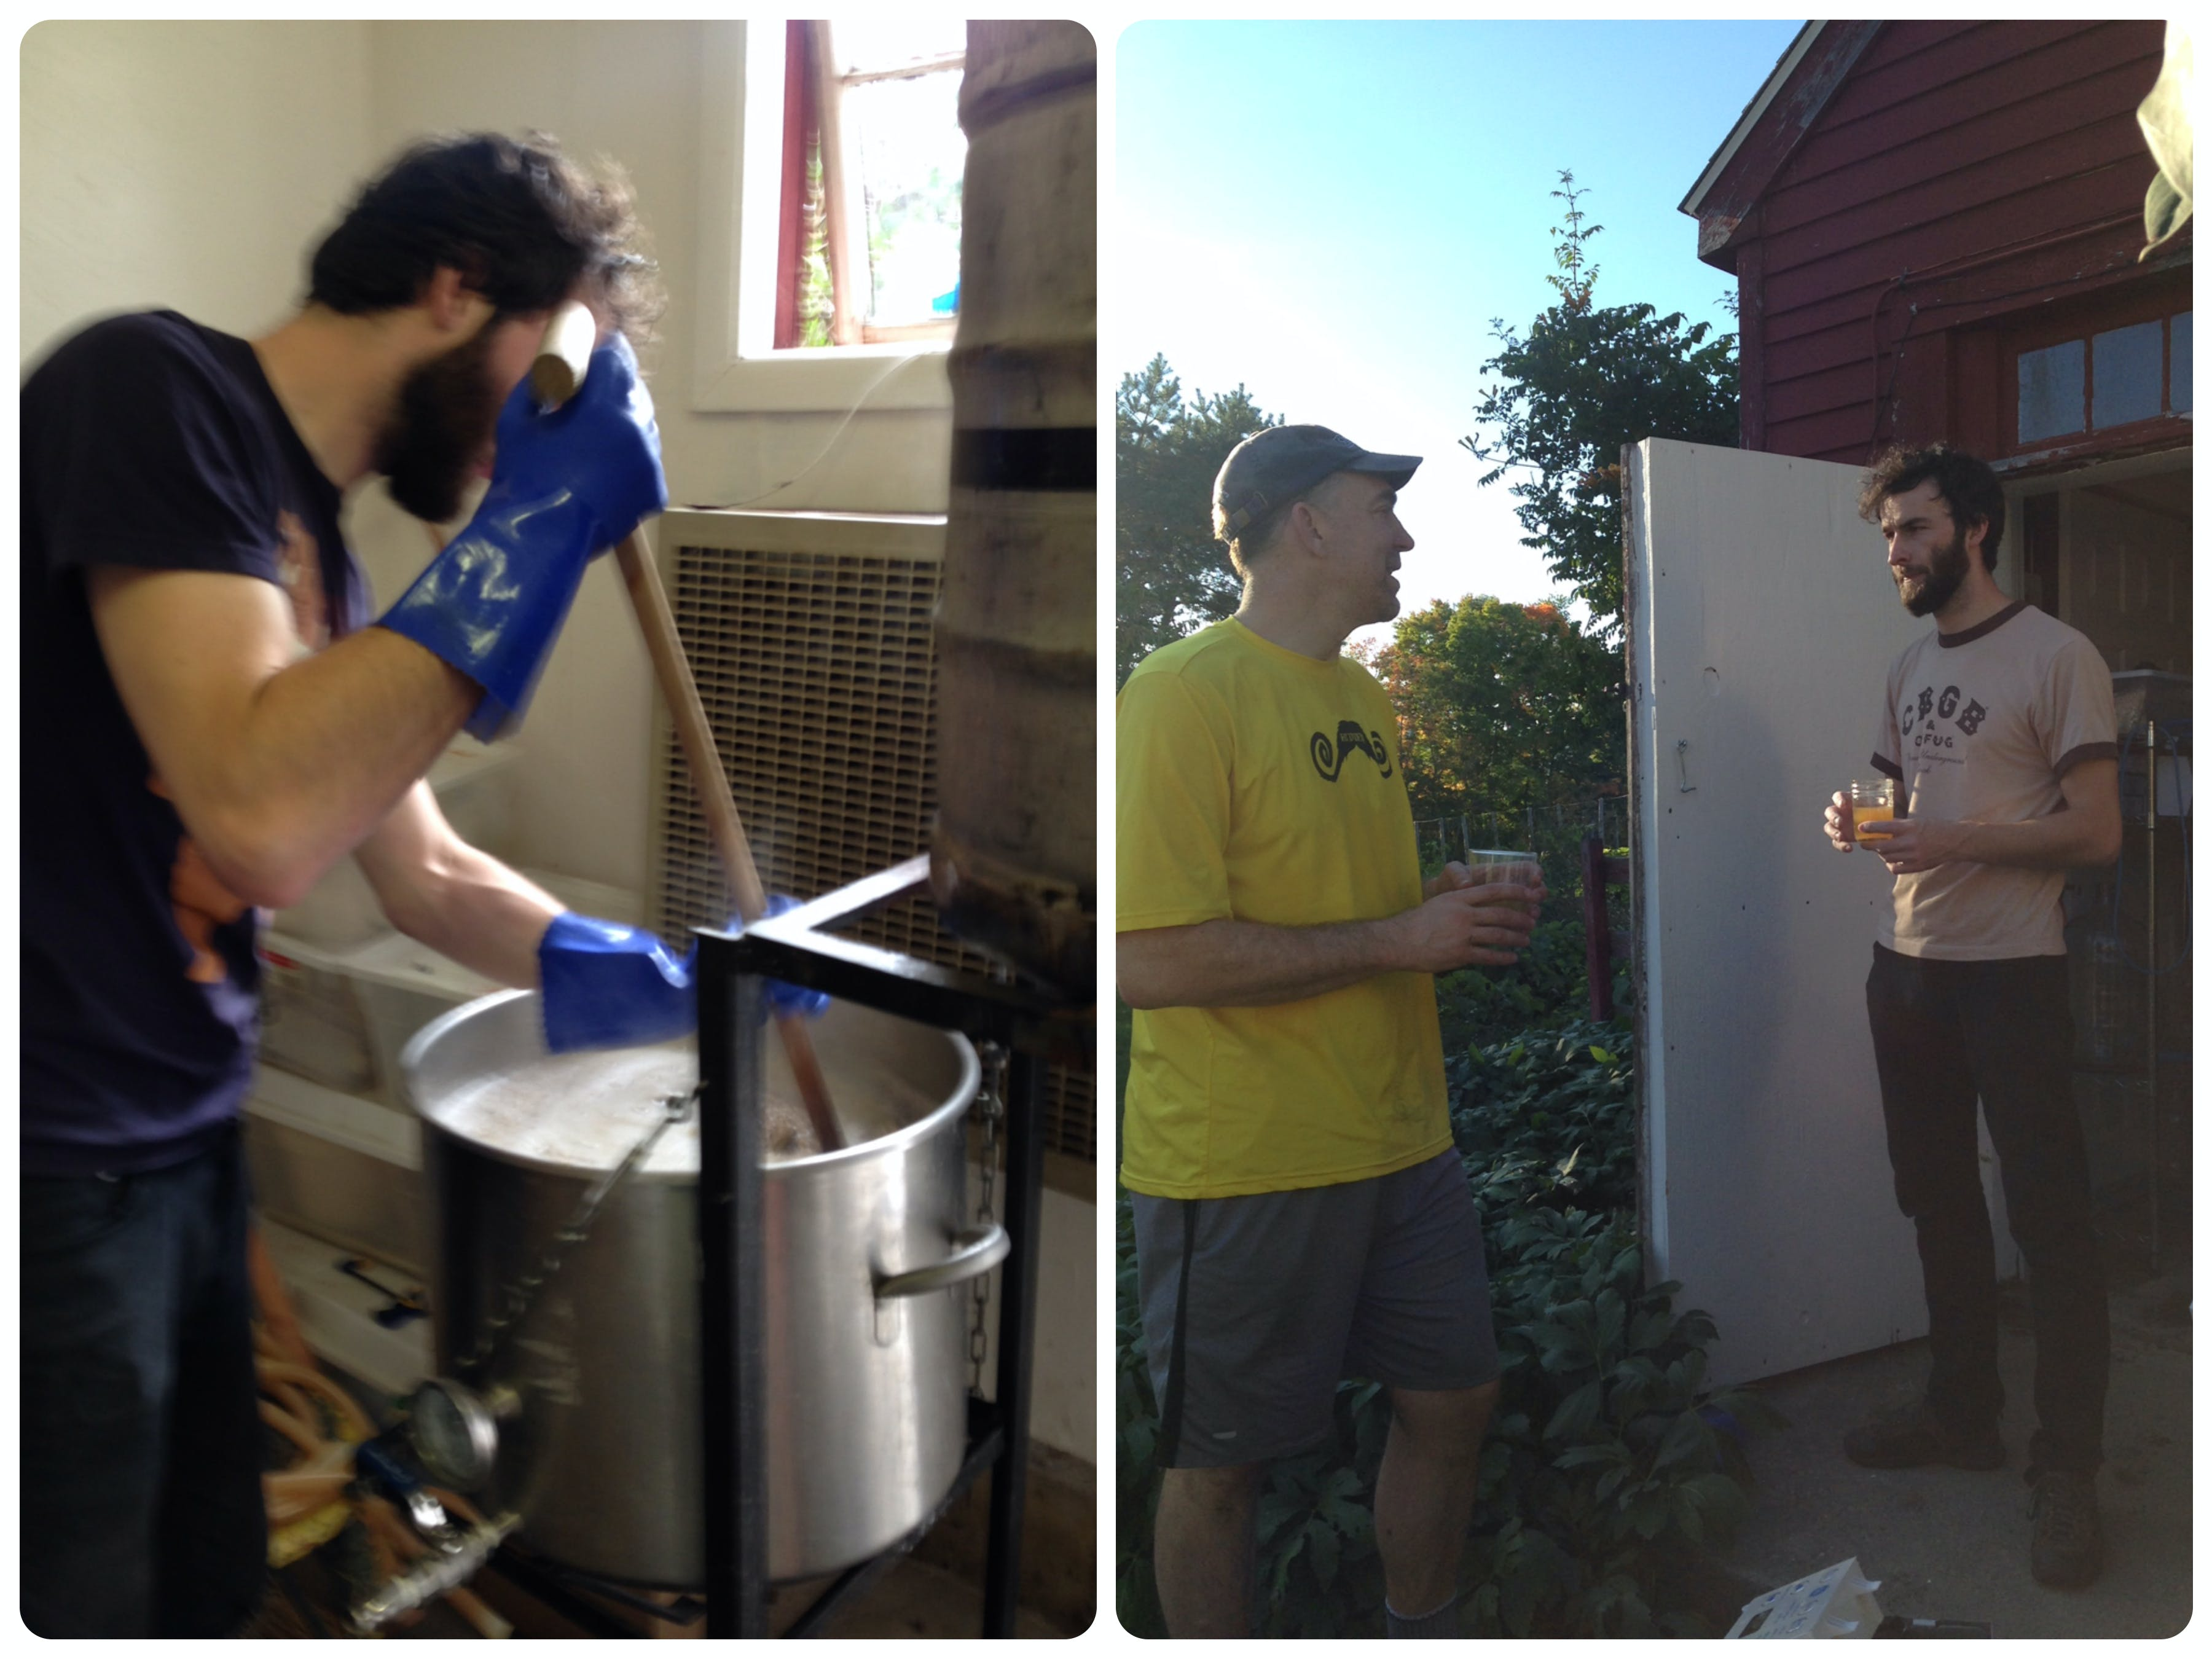 That's Derek (on the left) stirring a mash and enjoying the fruits of our labor with David (mustache jersey).